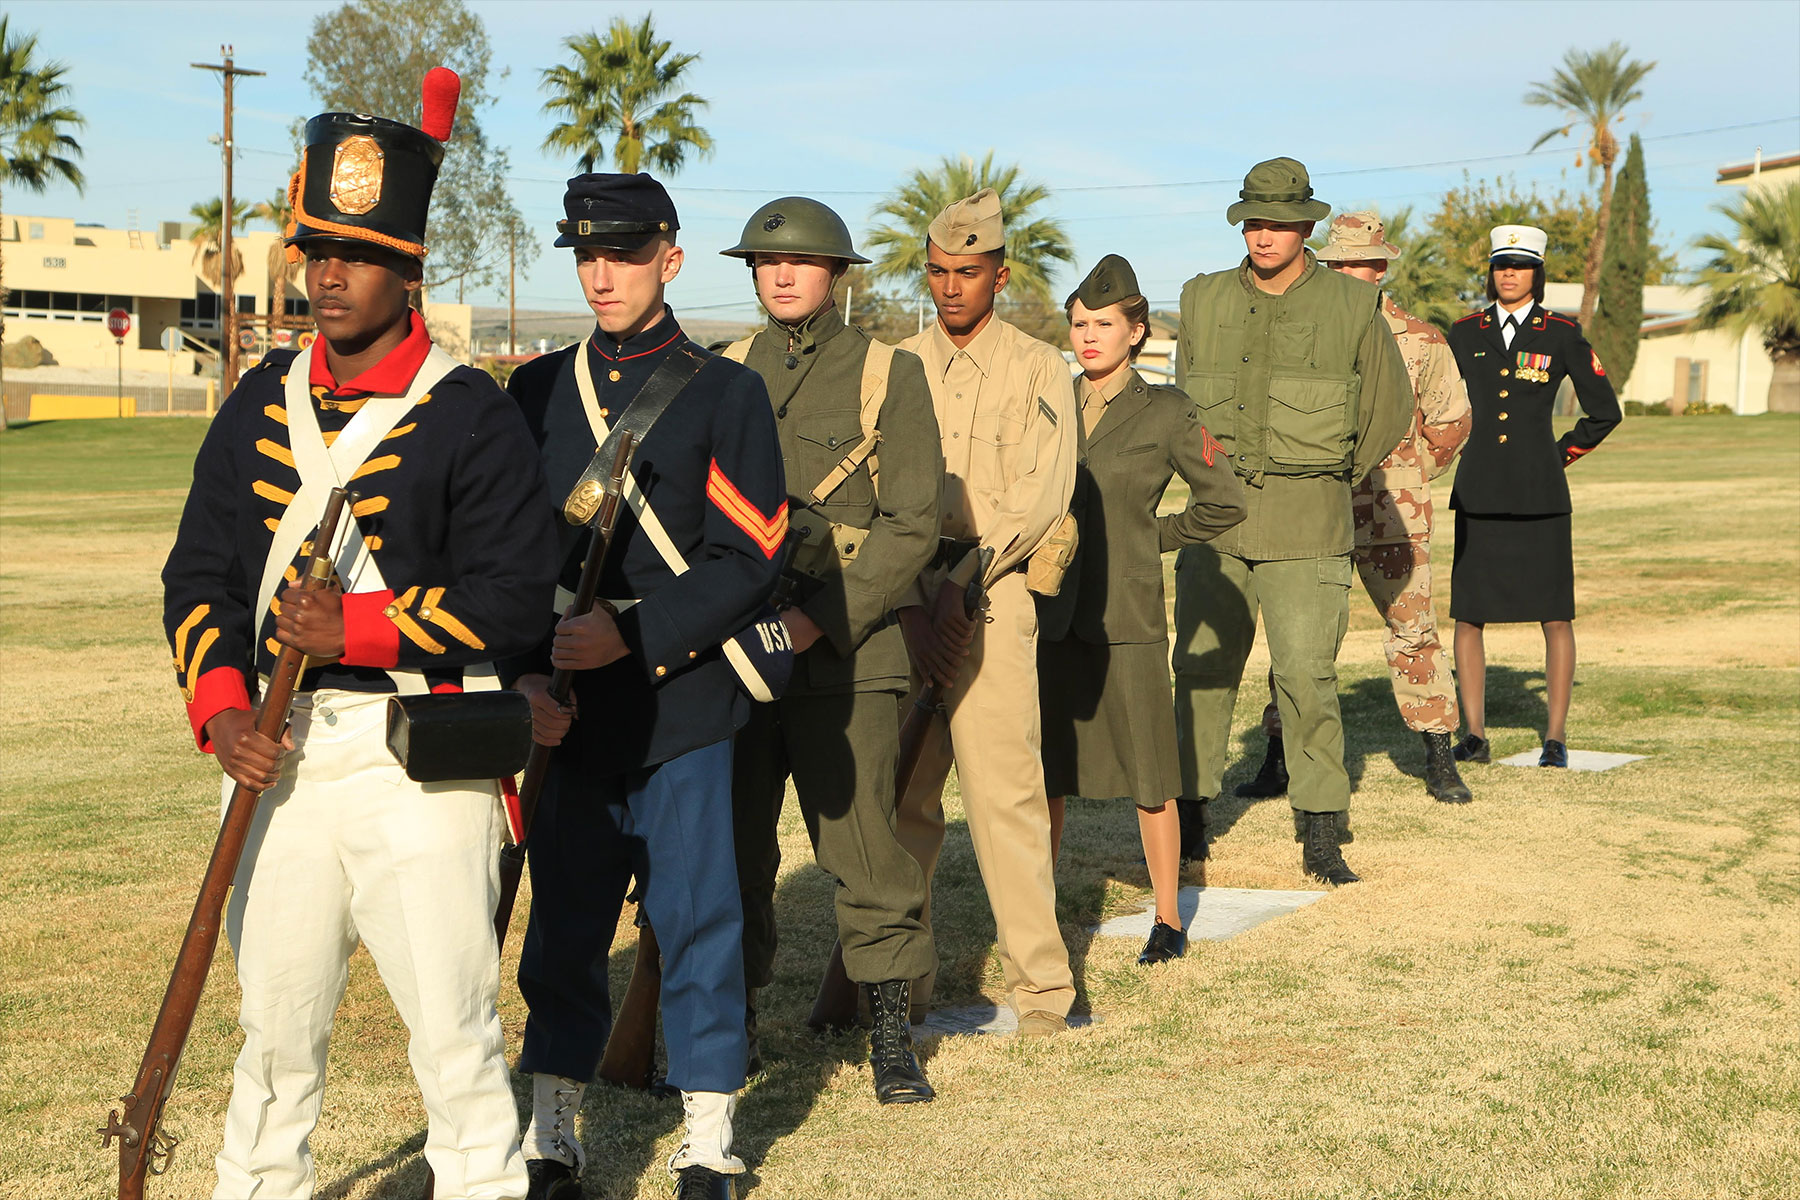 History of U.S. Marine Corps Uniforms | Military.com